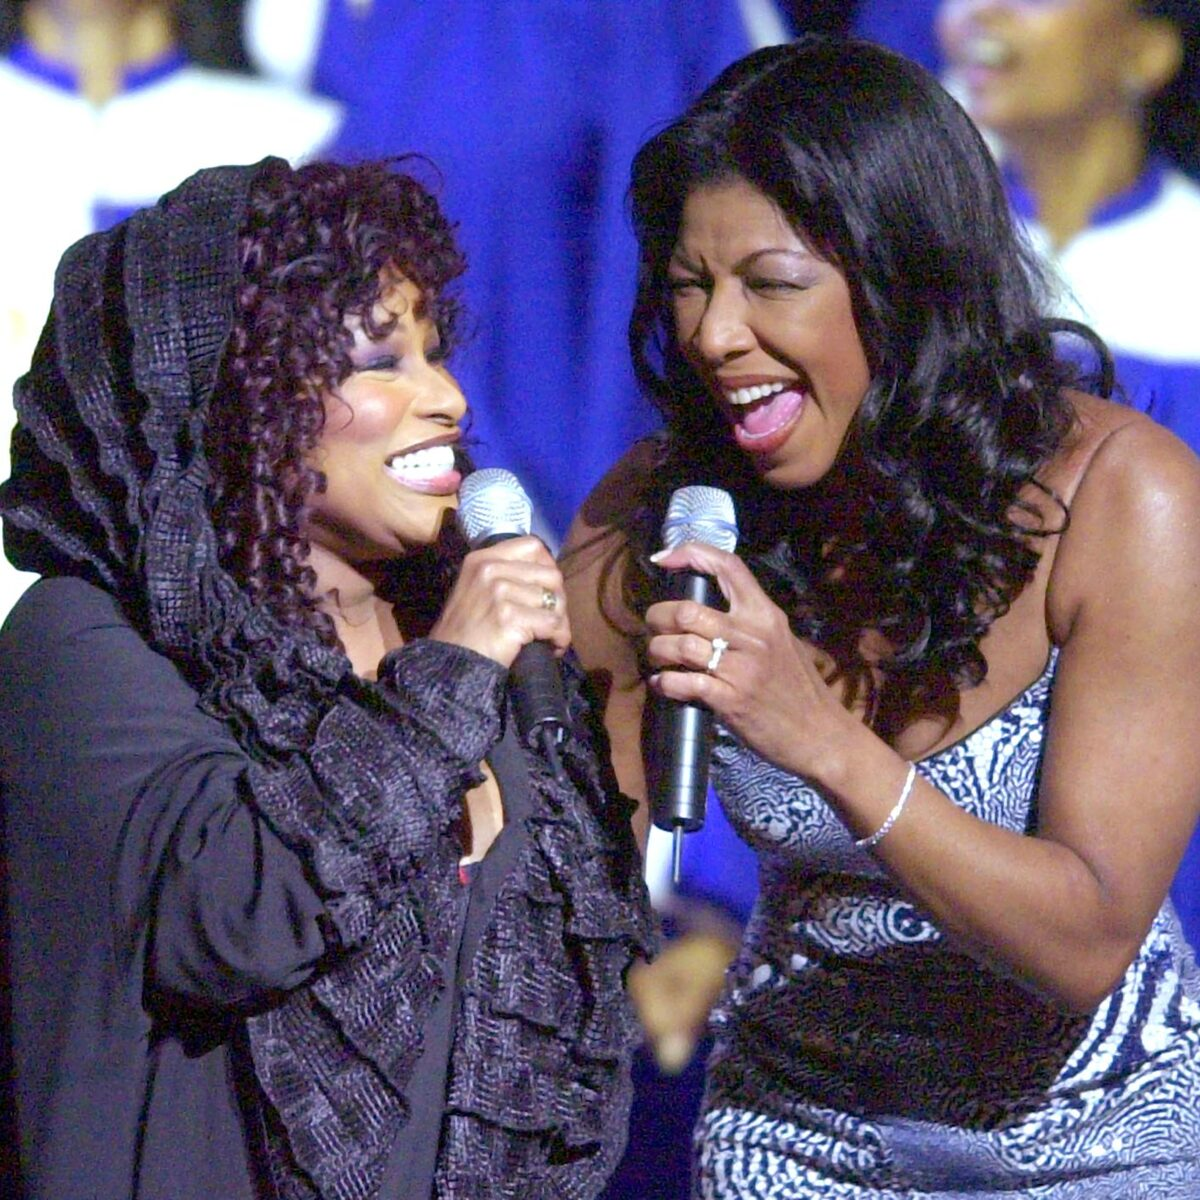 Natalie singing with her dear friend, Chaka Khan. According to @ChakaKhan, both ladies bonded over their love of jazz 🎶  • • •  #natalieandfriends #nataliecole #chakakhan